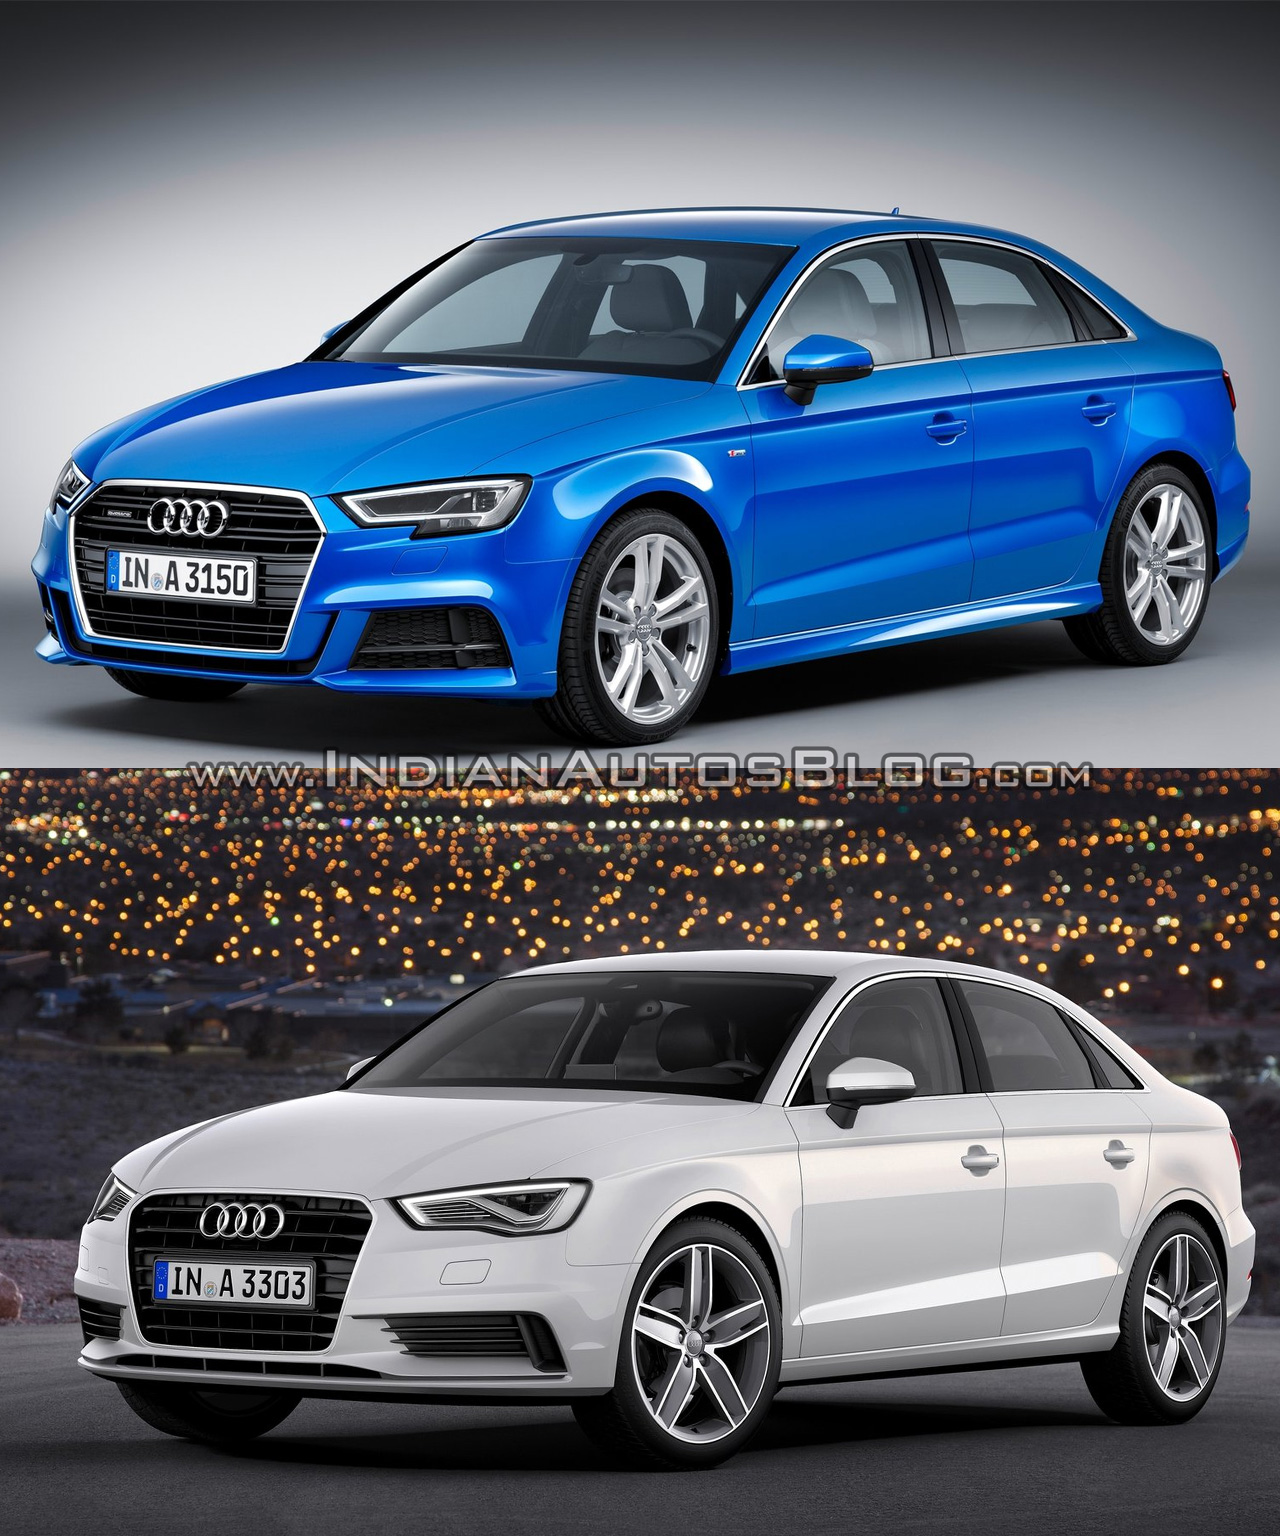 audi a3 sedan facelift old vs new. Black Bedroom Furniture Sets. Home Design Ideas